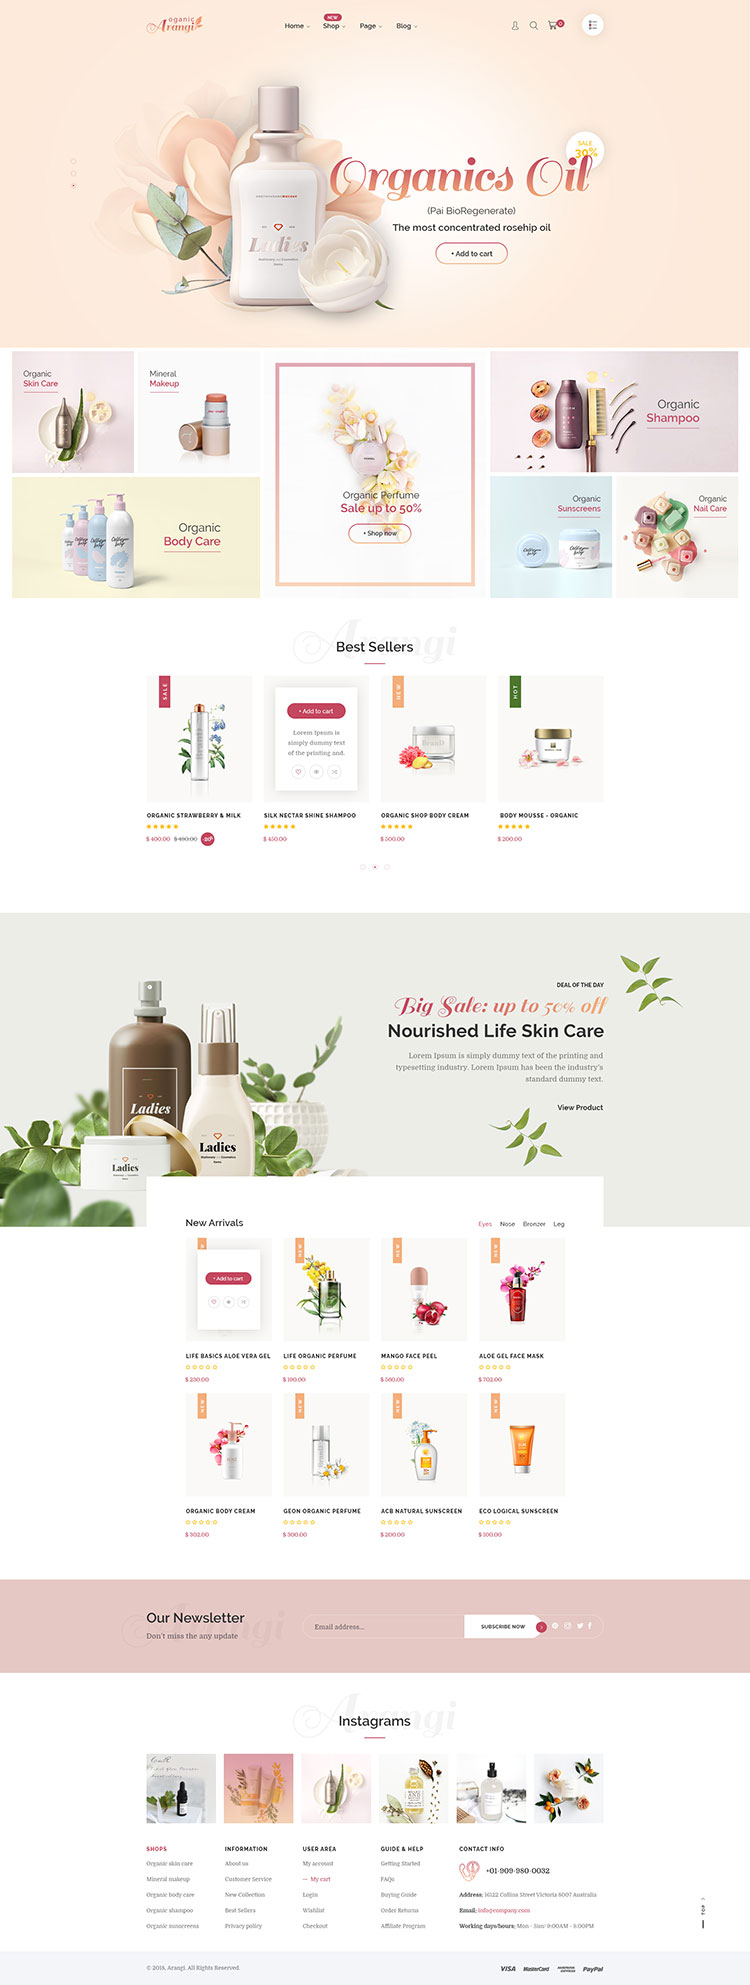 01_Index—Organic-cosmetics